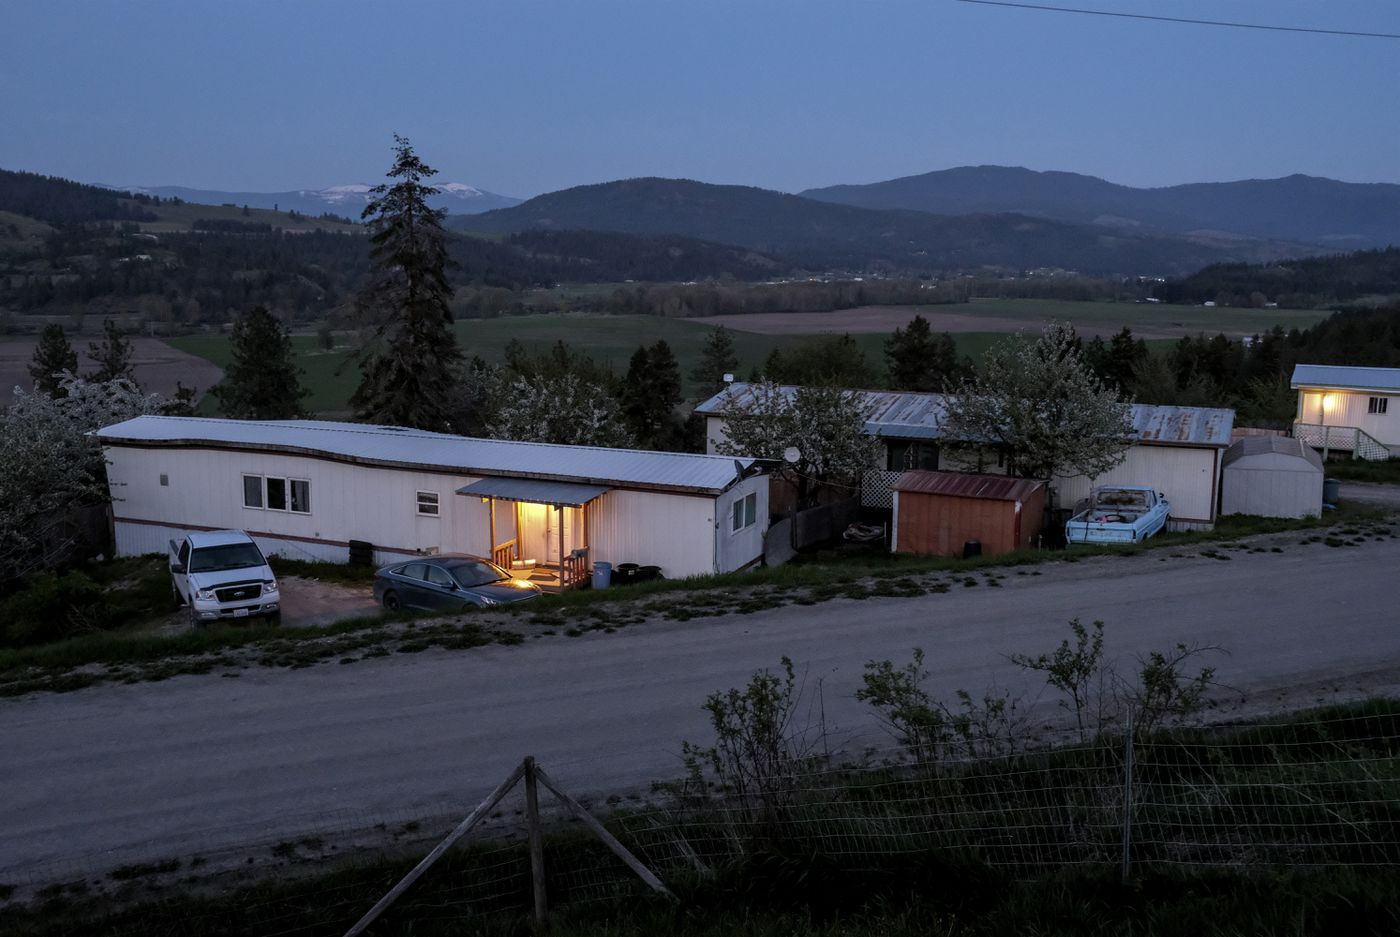 The view from the porch of Kenyon Stewart's home in Colville, Wash. He does not like the manufactured home where he currently lives and hopes to buy a house. MUST CREDIT: Washington Post photo by Bonnie Jo Mount